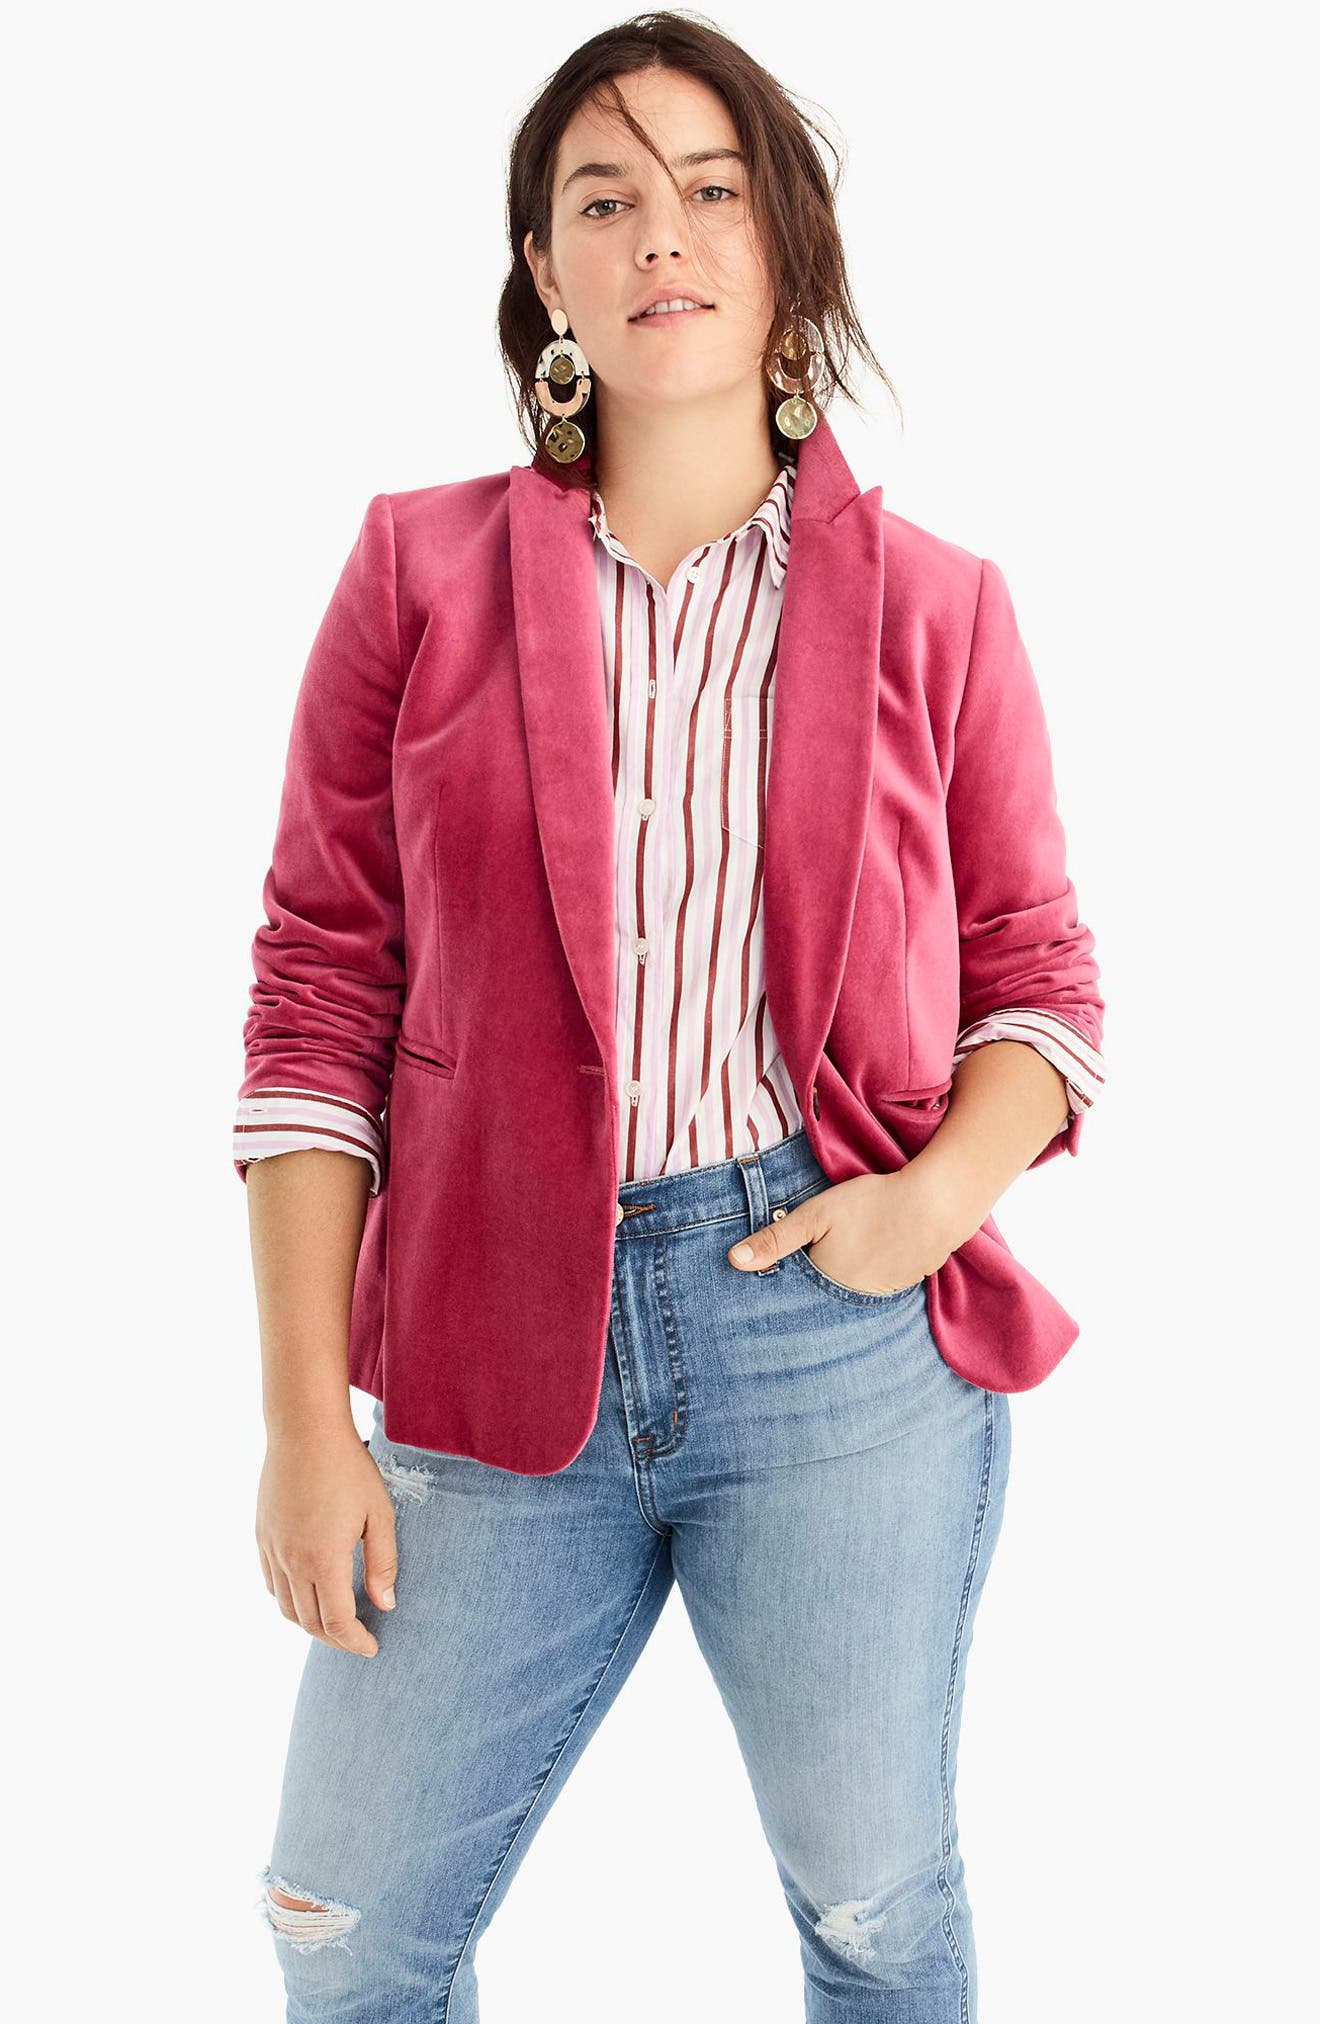 Parke Velvet Blazer,                             Alternate thumbnail 12, color,                             DRIED ROSE